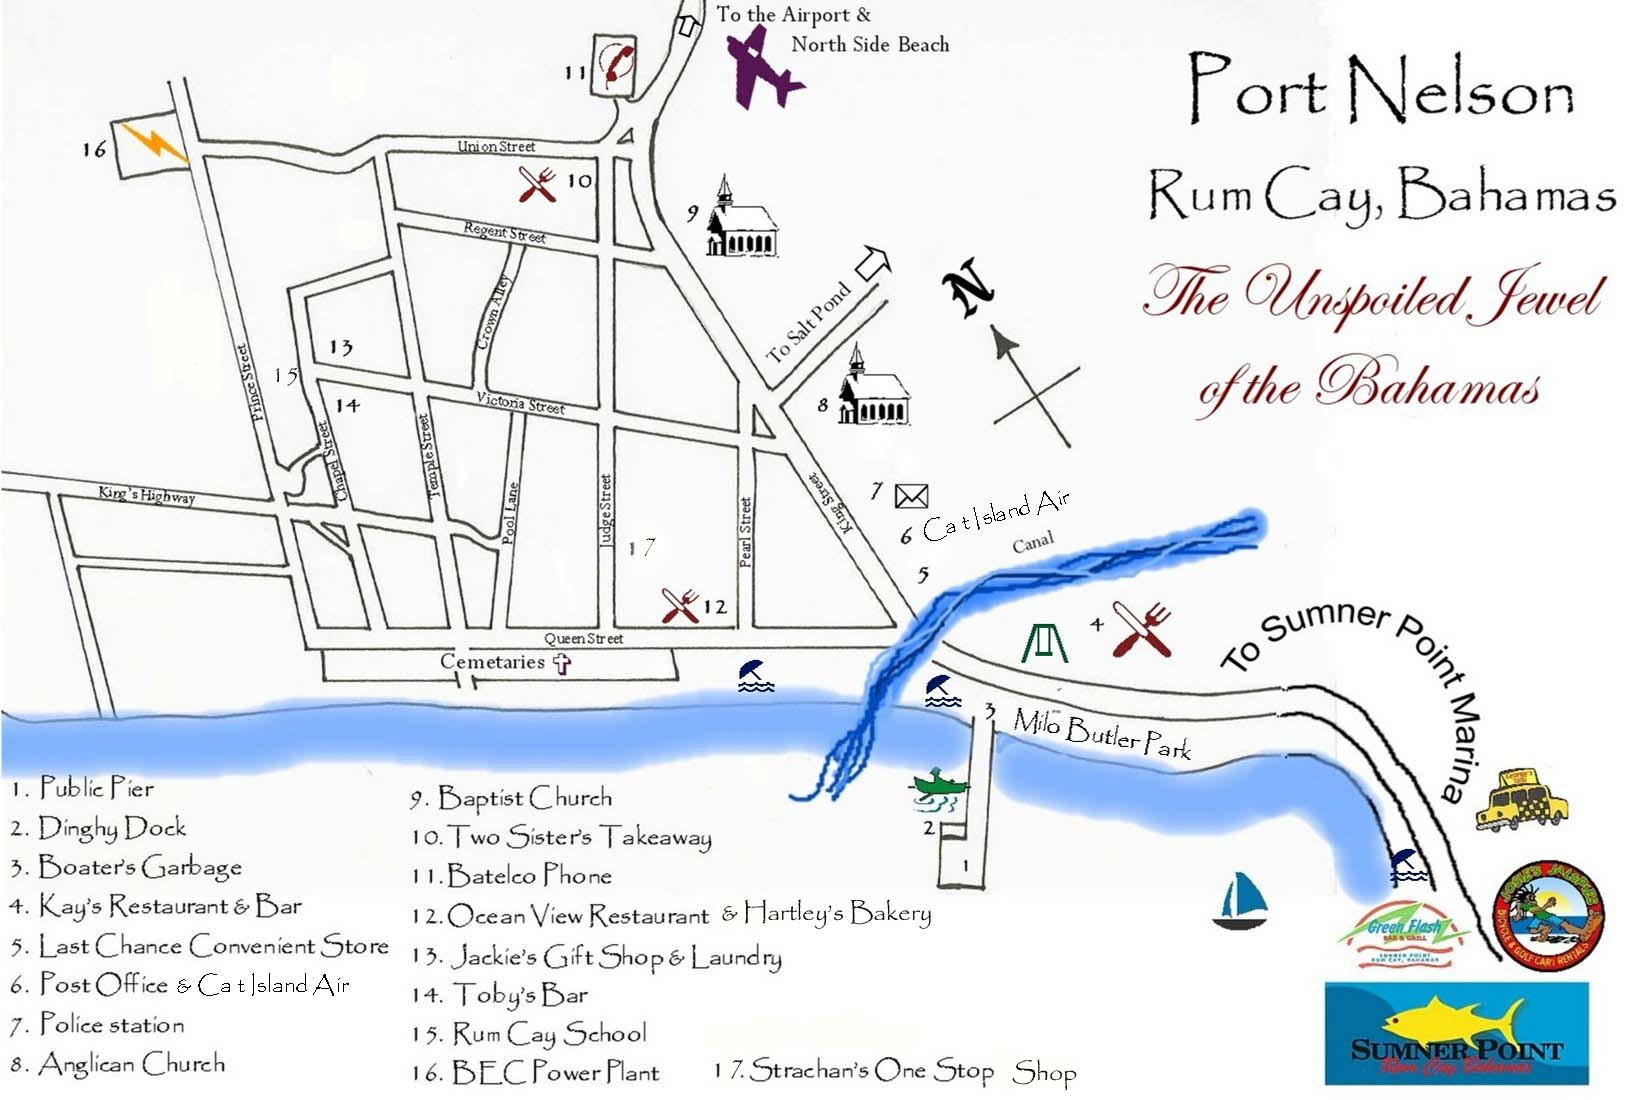 Rum Cay Road map